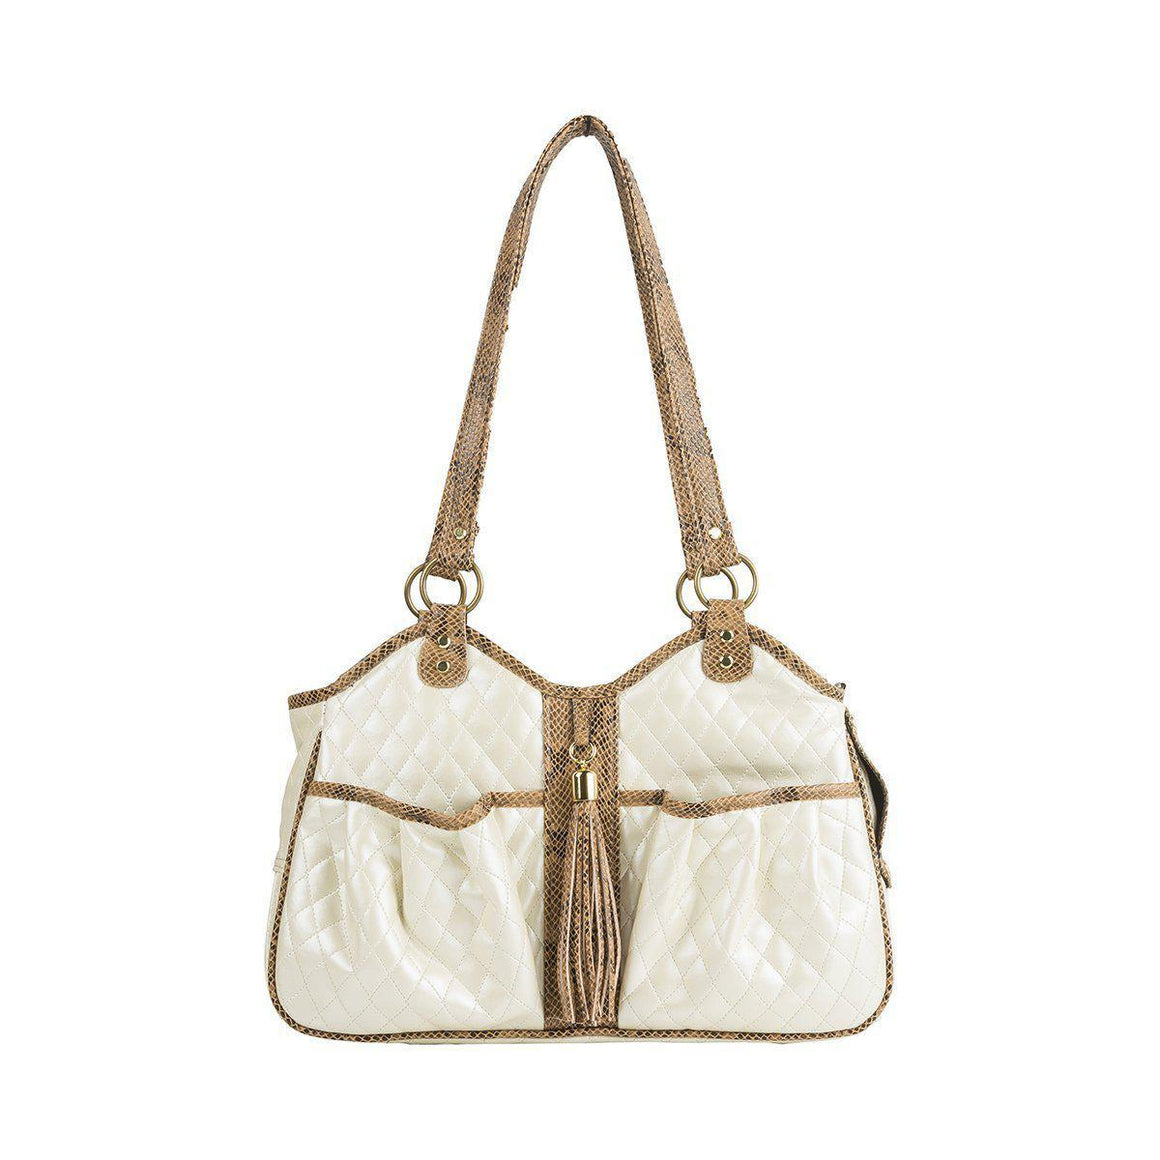 Petote Metro Bag Couture Collection - Ivory Quilted with Snake Tassel